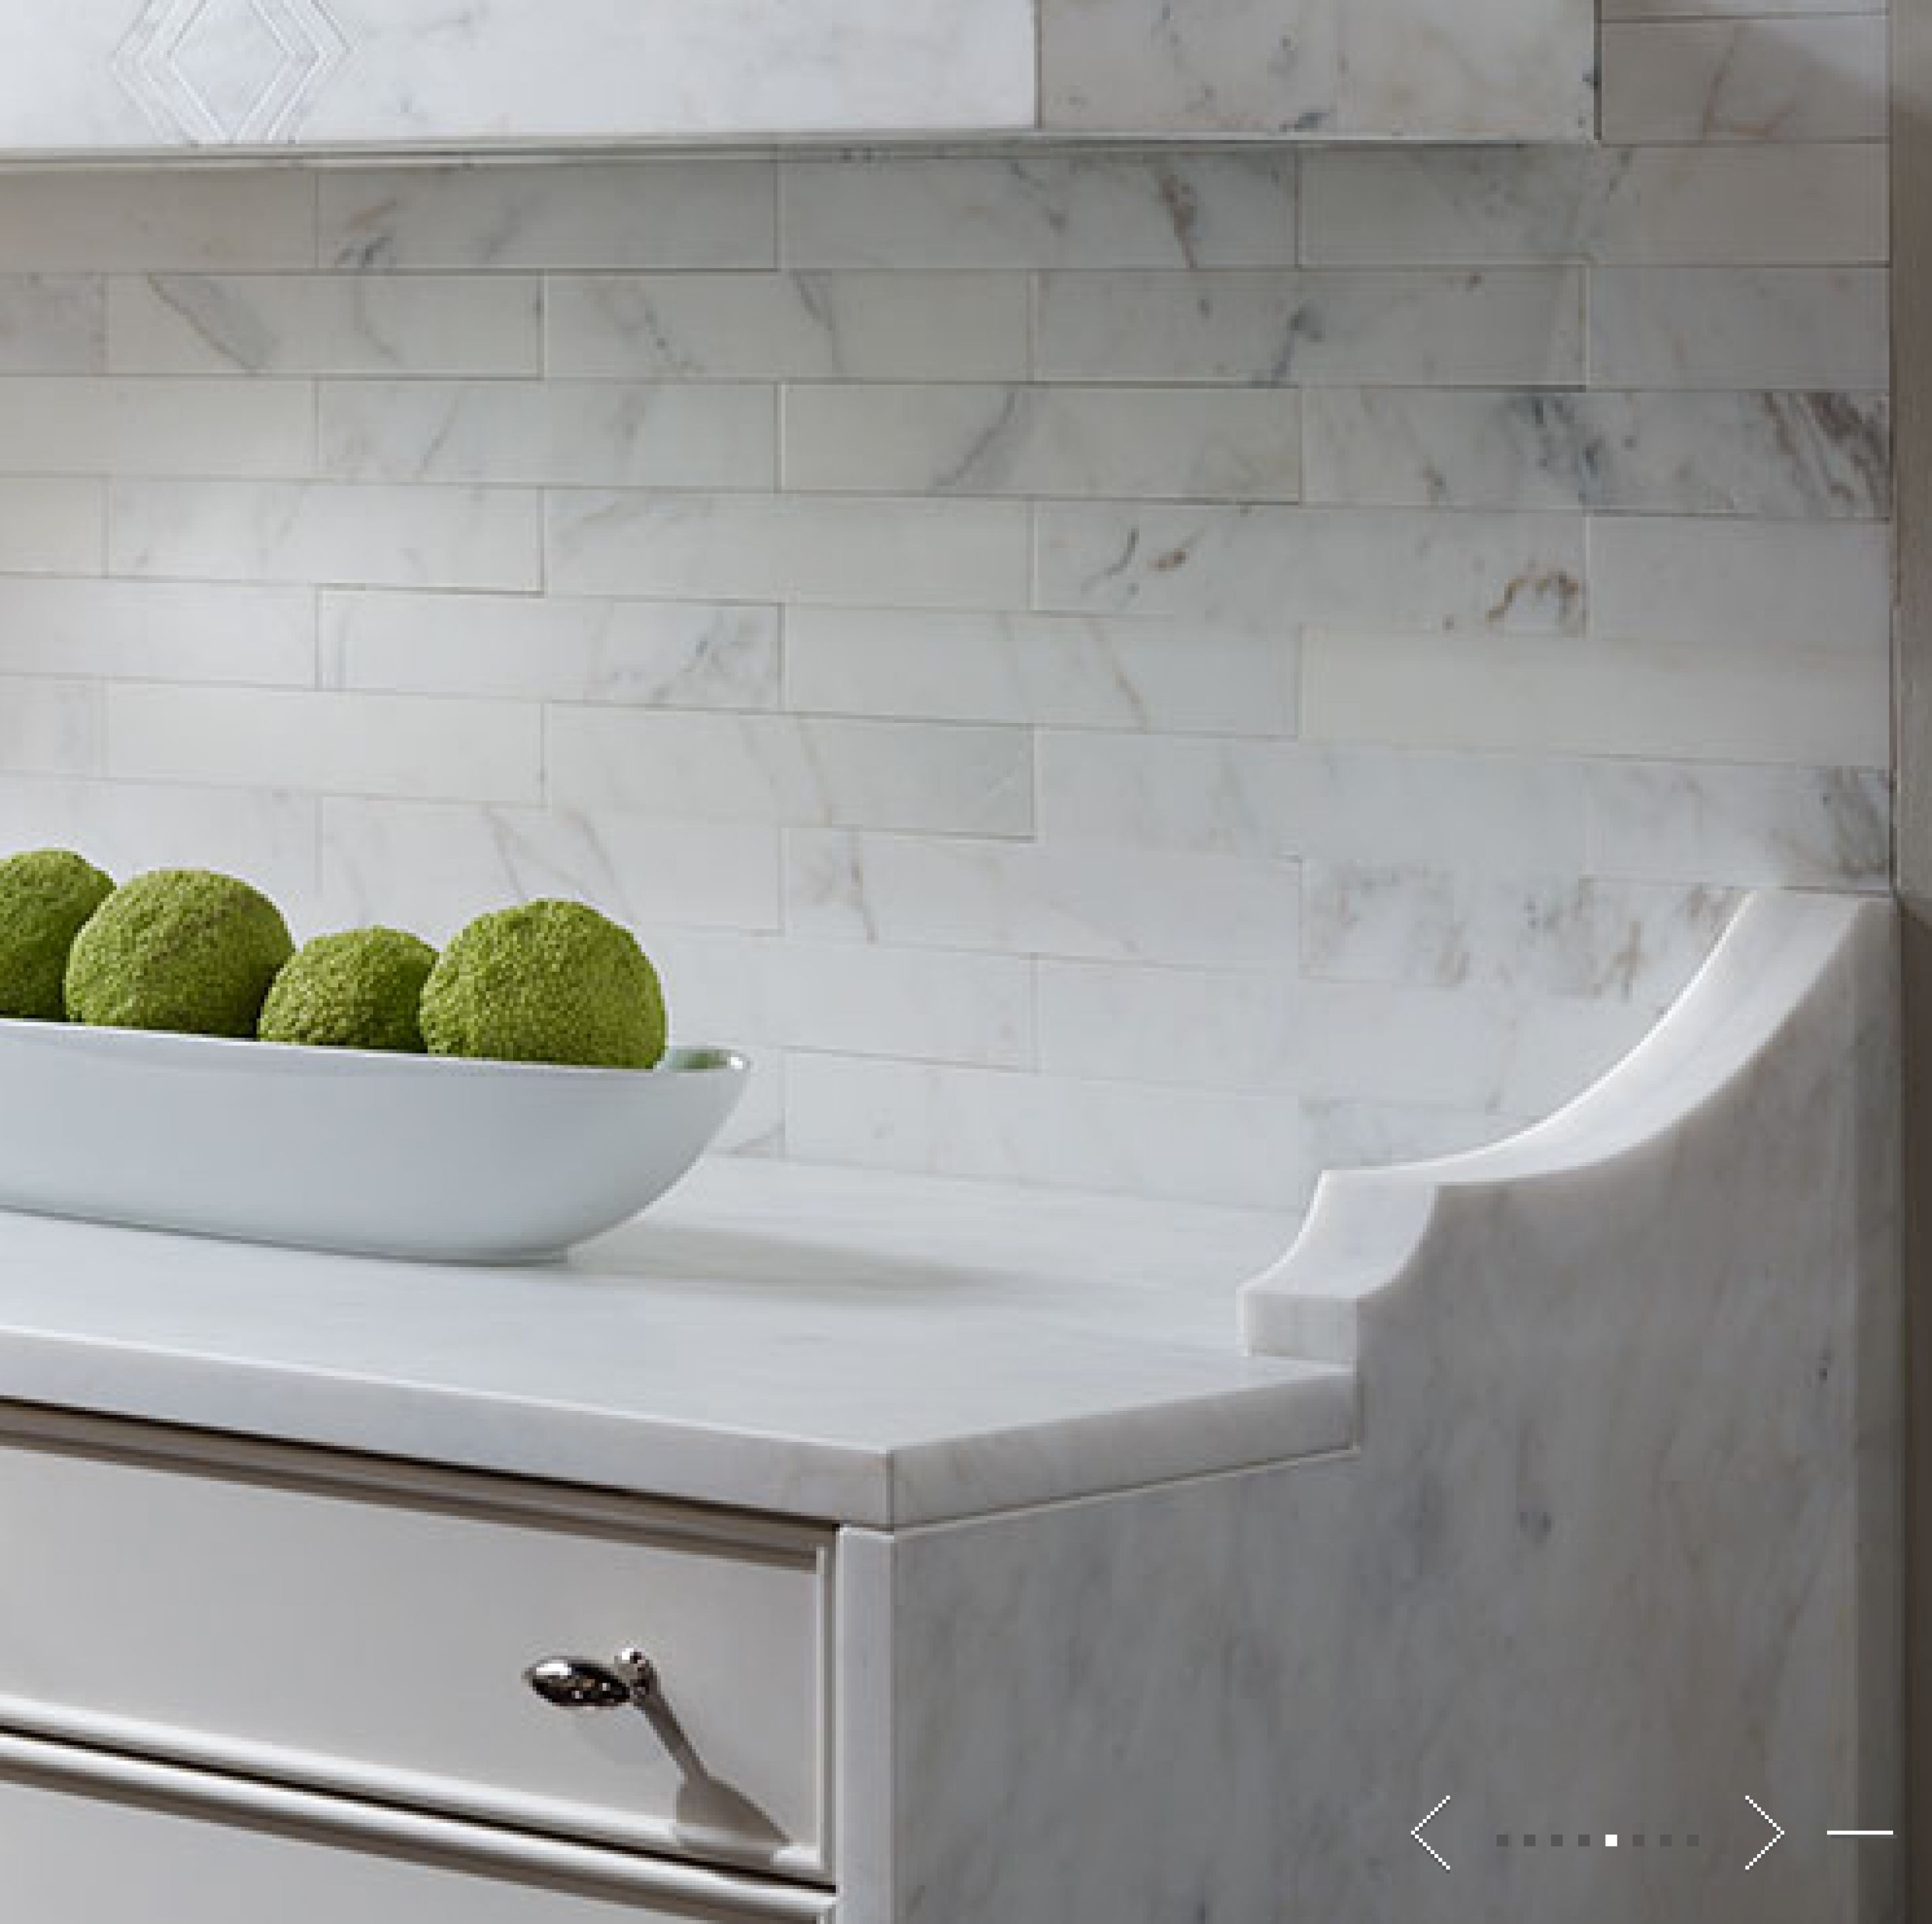 How to install marble wainscoting google search detail how to install marble wainscoting google search marble subway tilessubway tile backsplashkitchen dailygadgetfo Gallery